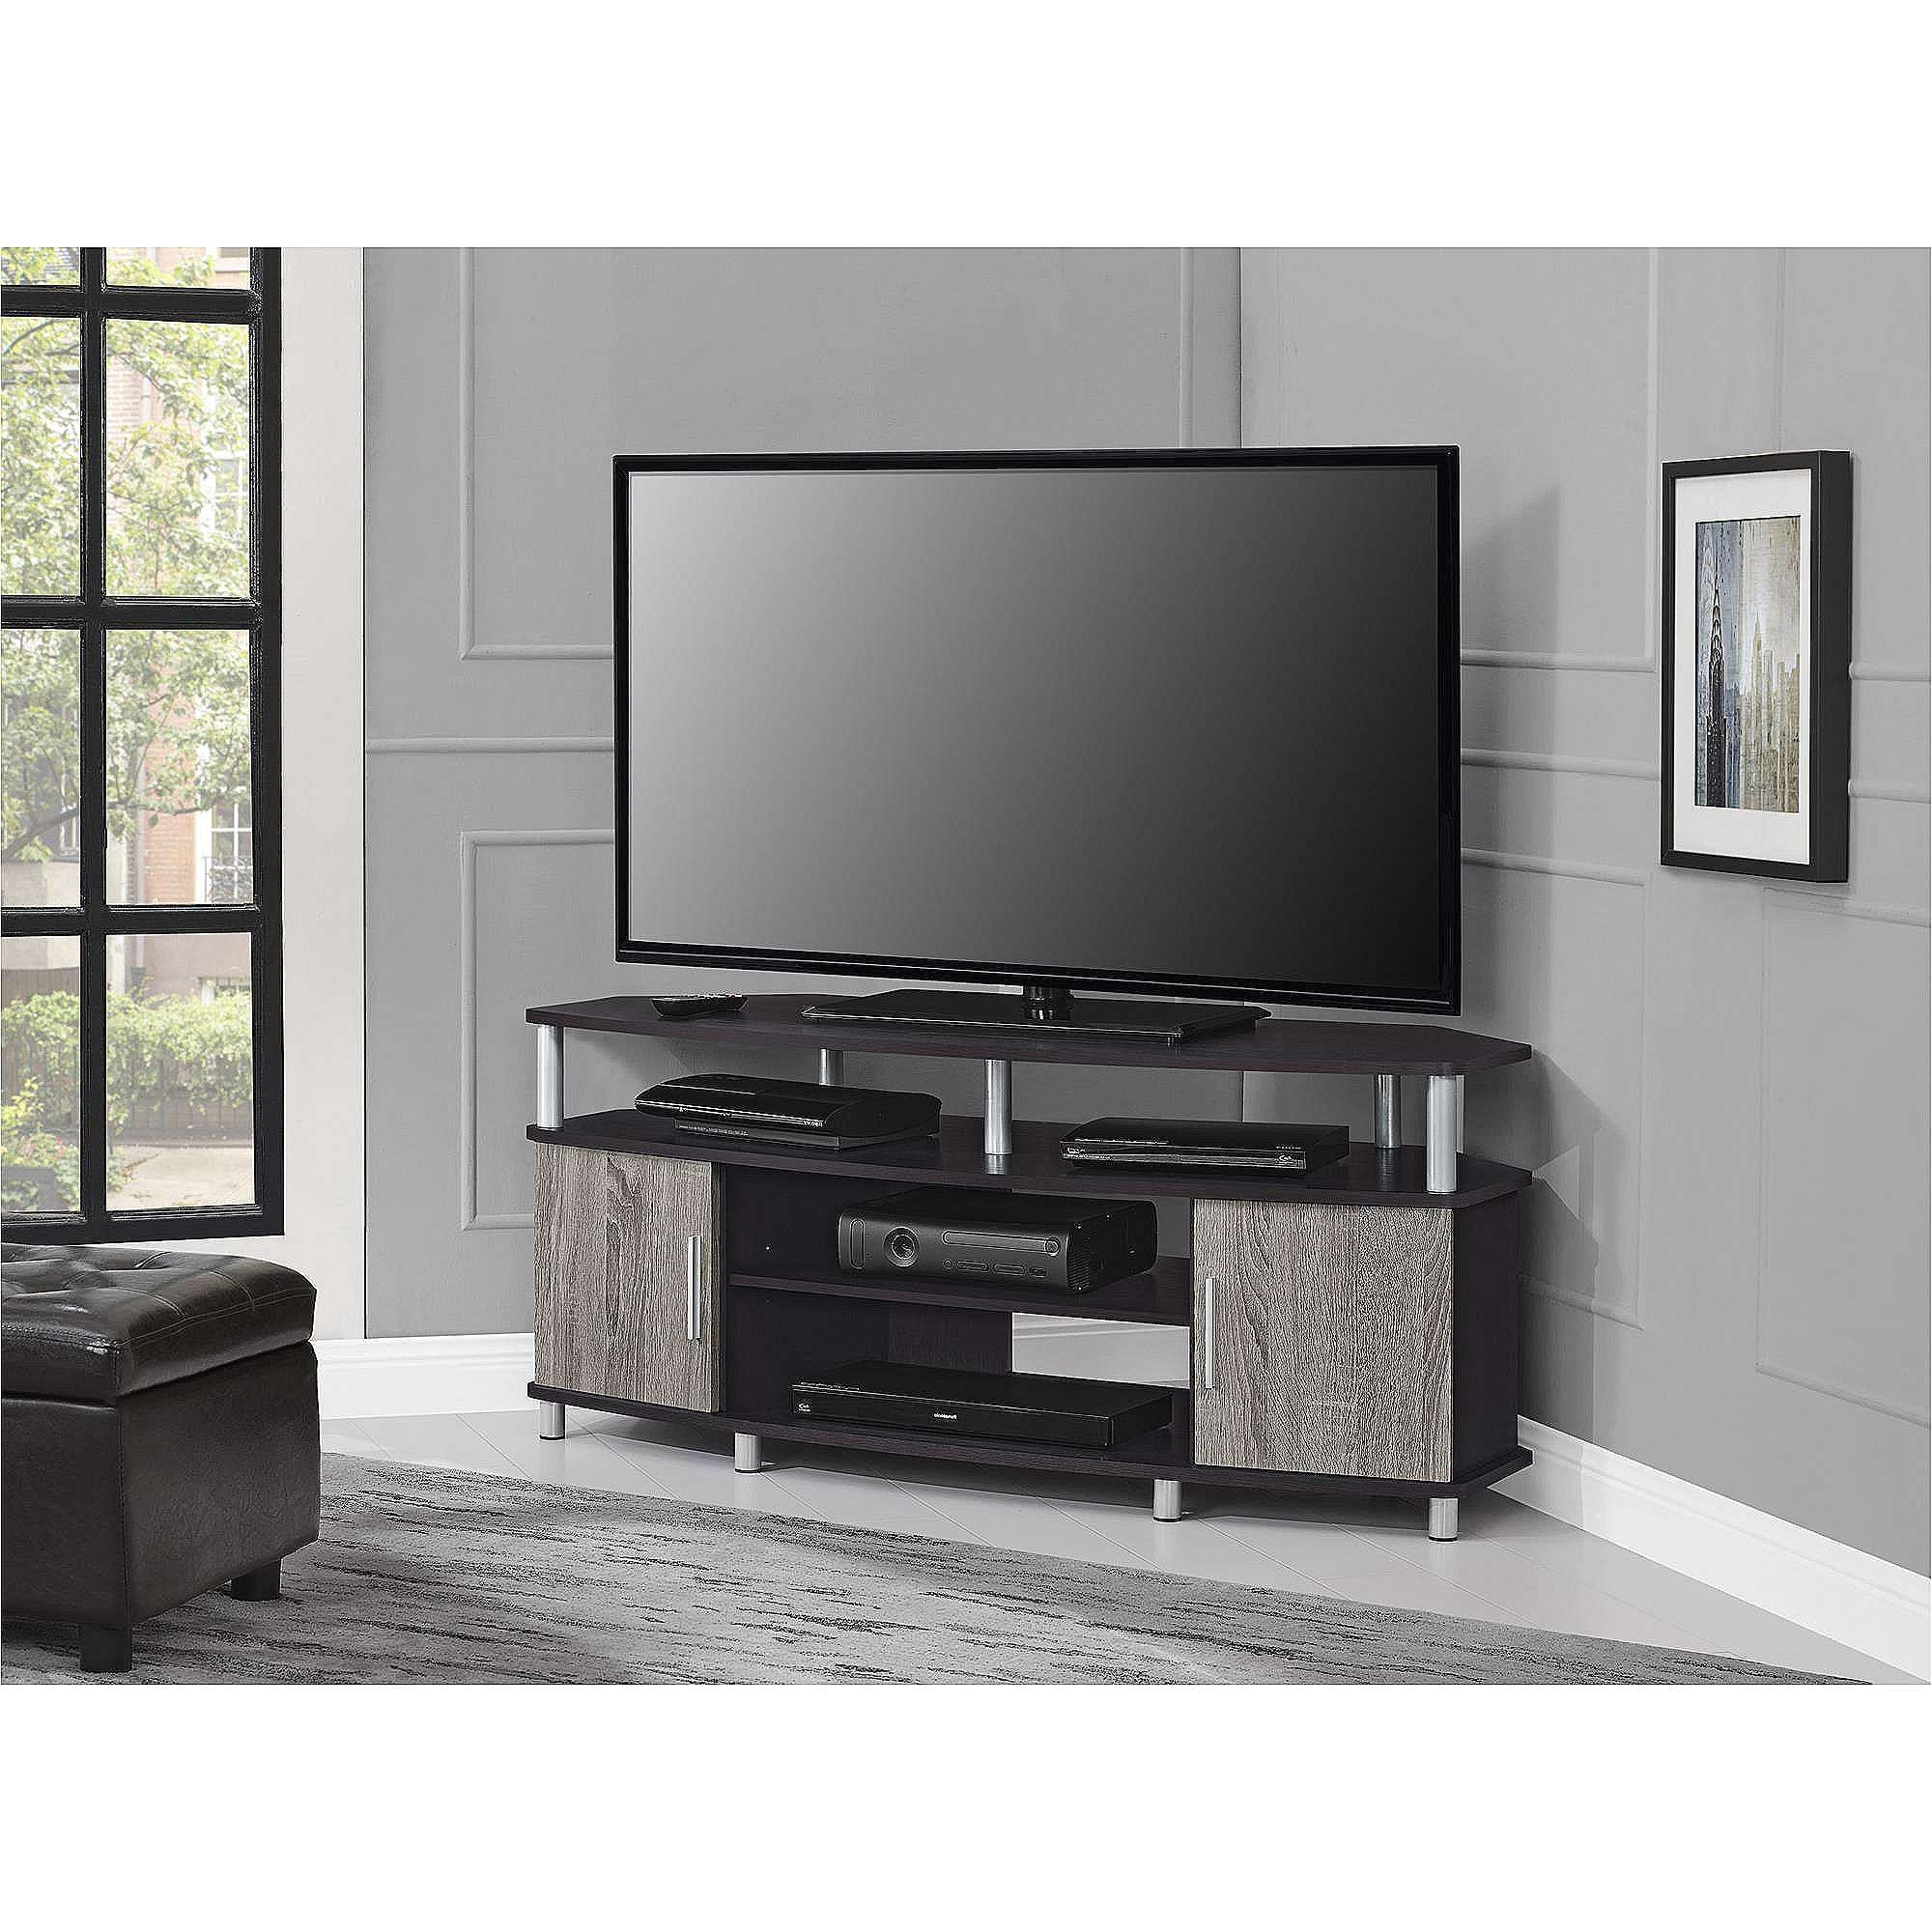 Luxury Modern Corner Tv Stand (36 Photos) | Bathgroundspath Throughout Luxury Tv Stands (View 12 of 15)